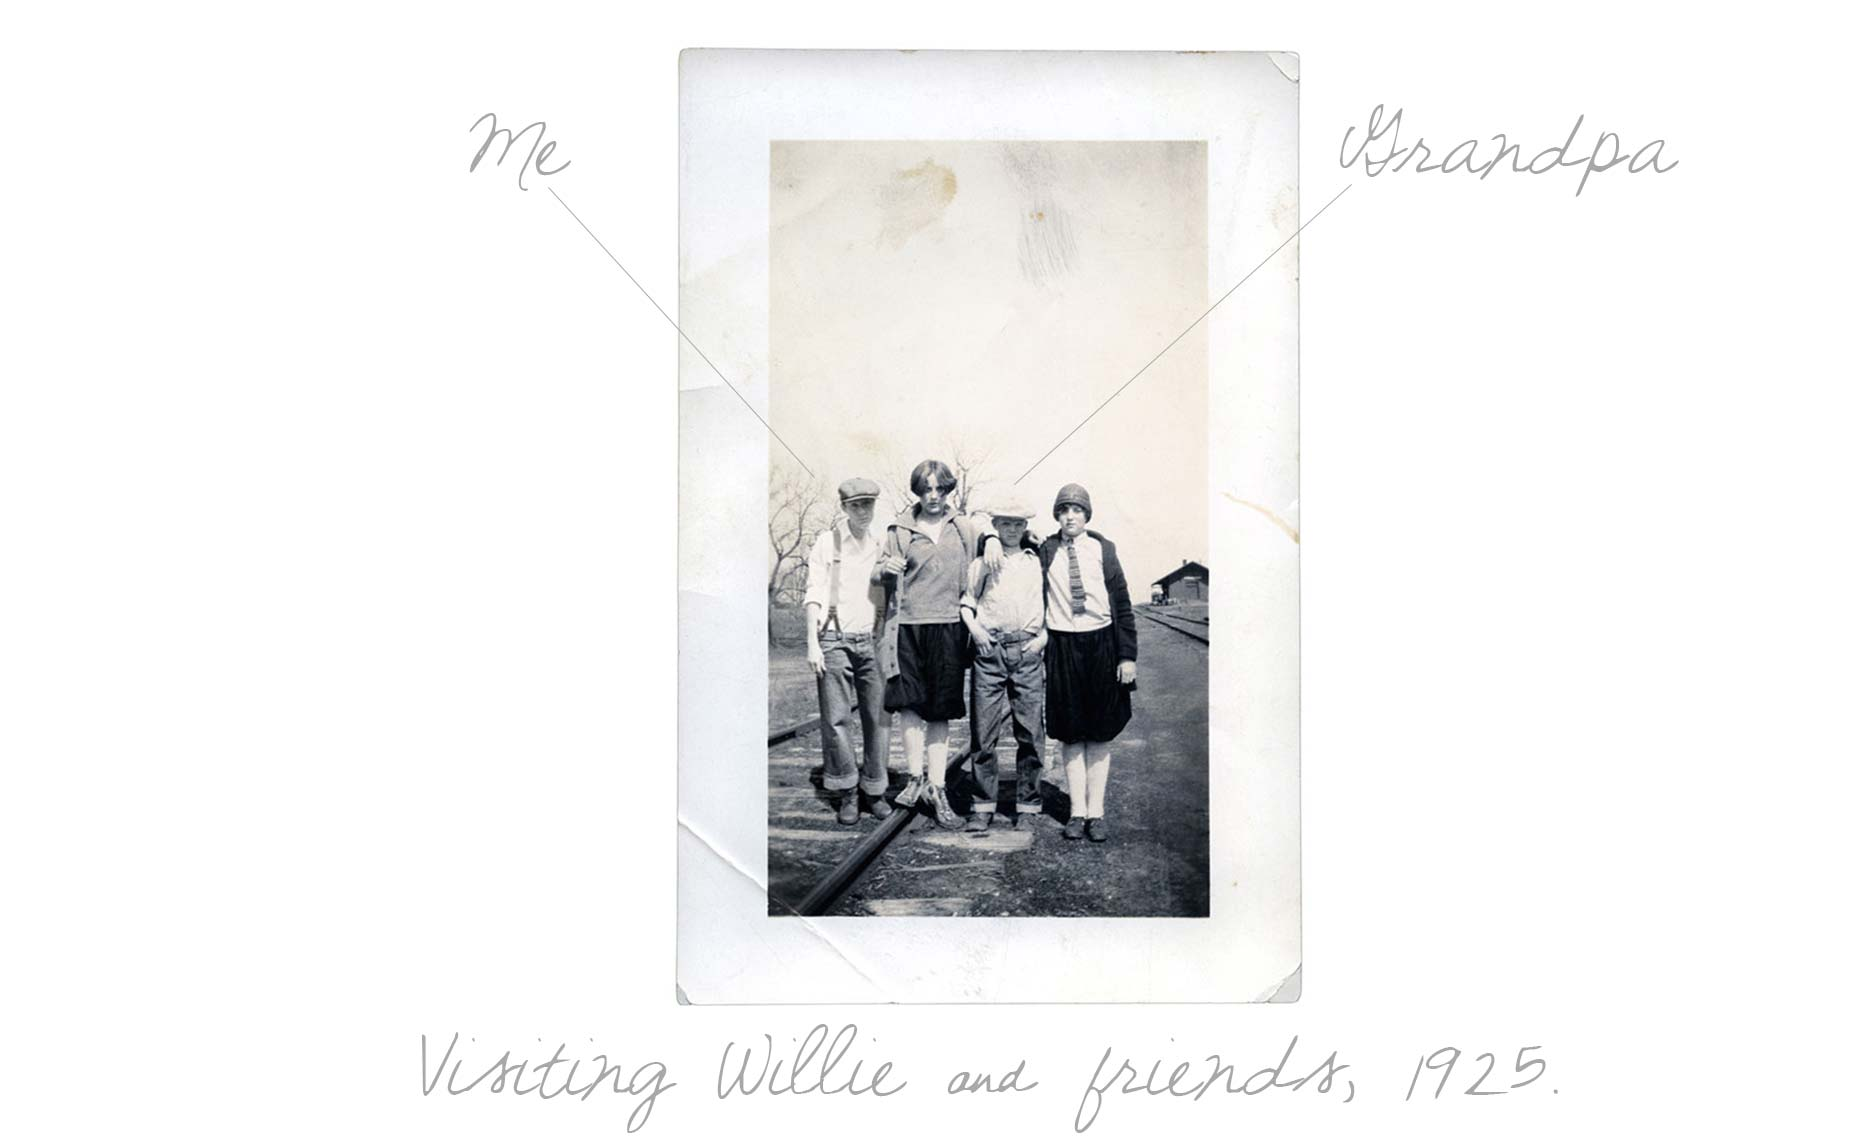 Visiting Willie on the Tracks 1925 txt